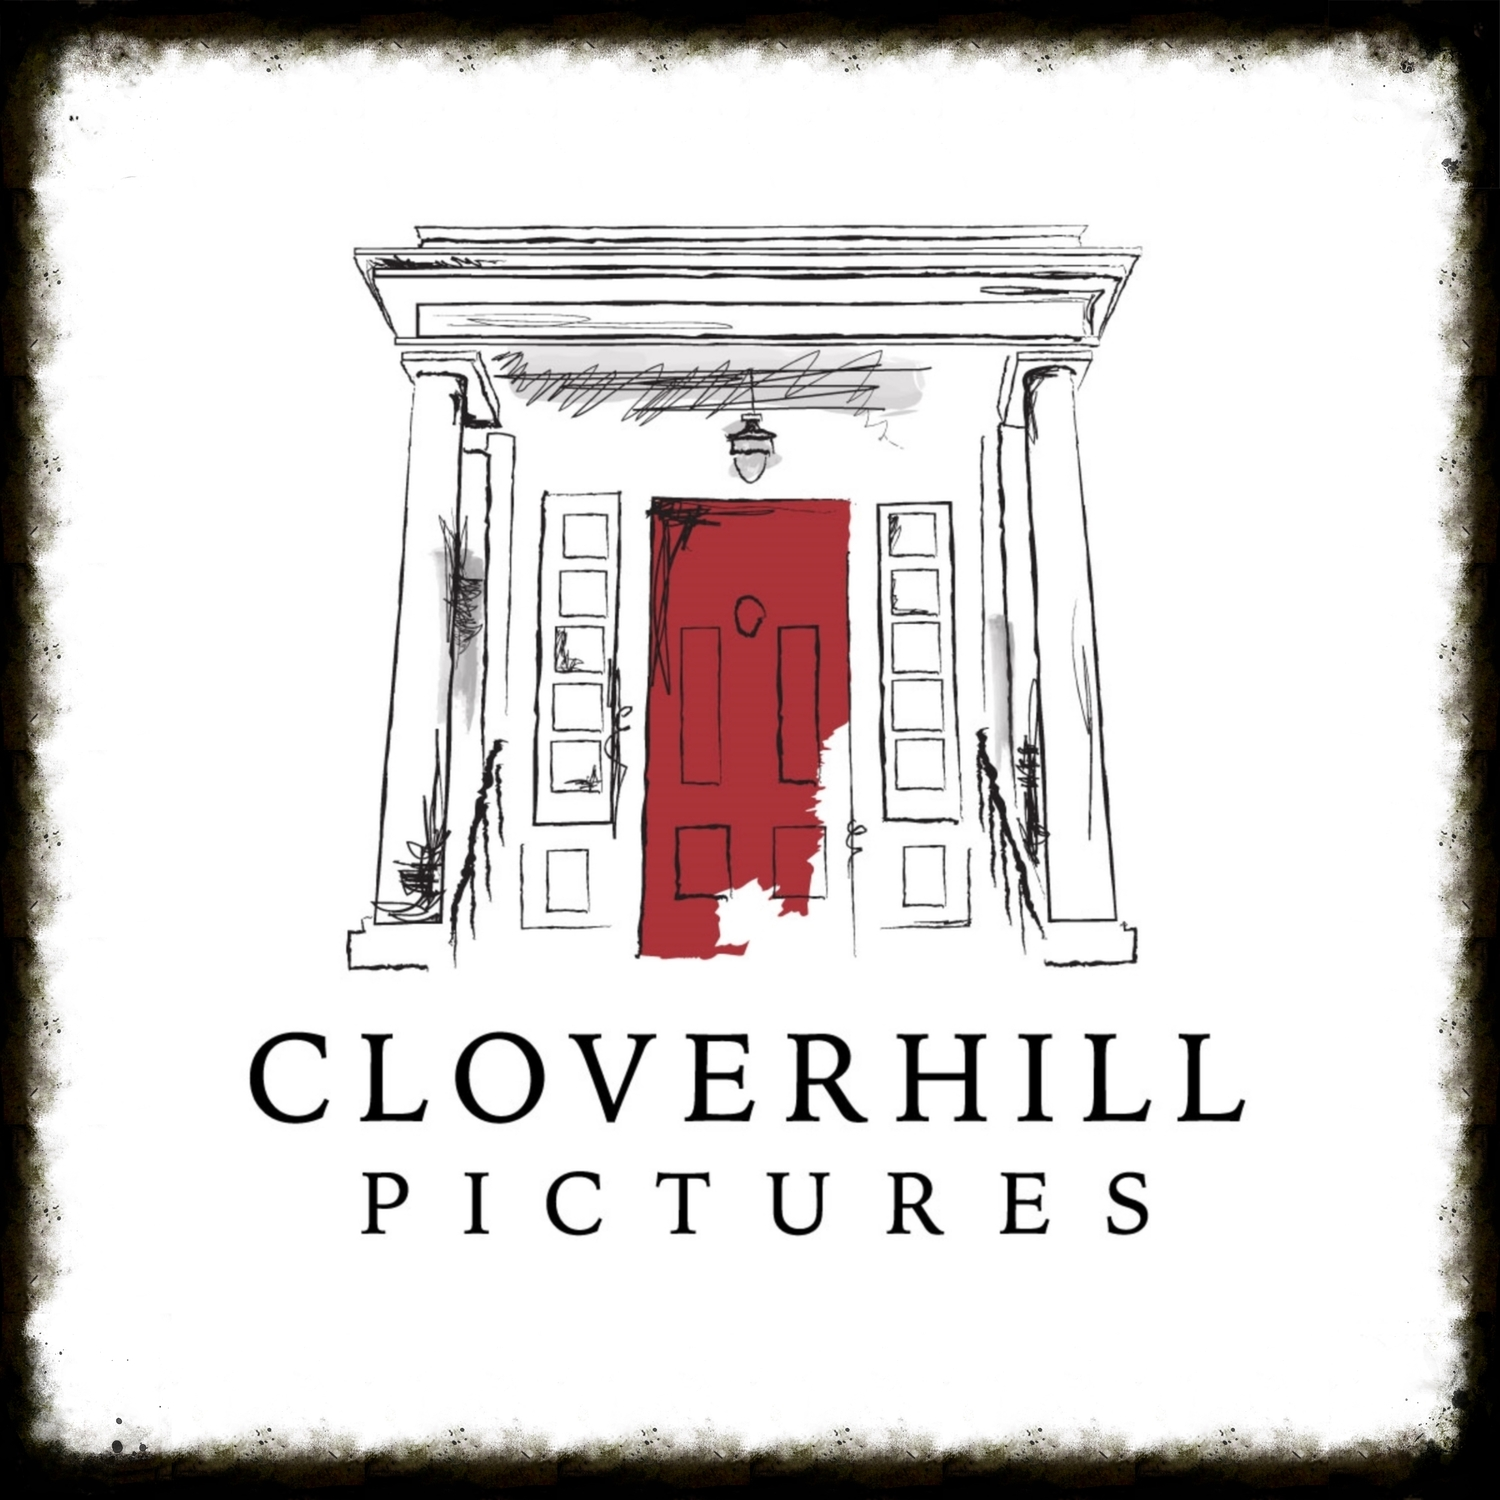 Cloverhill Pictures